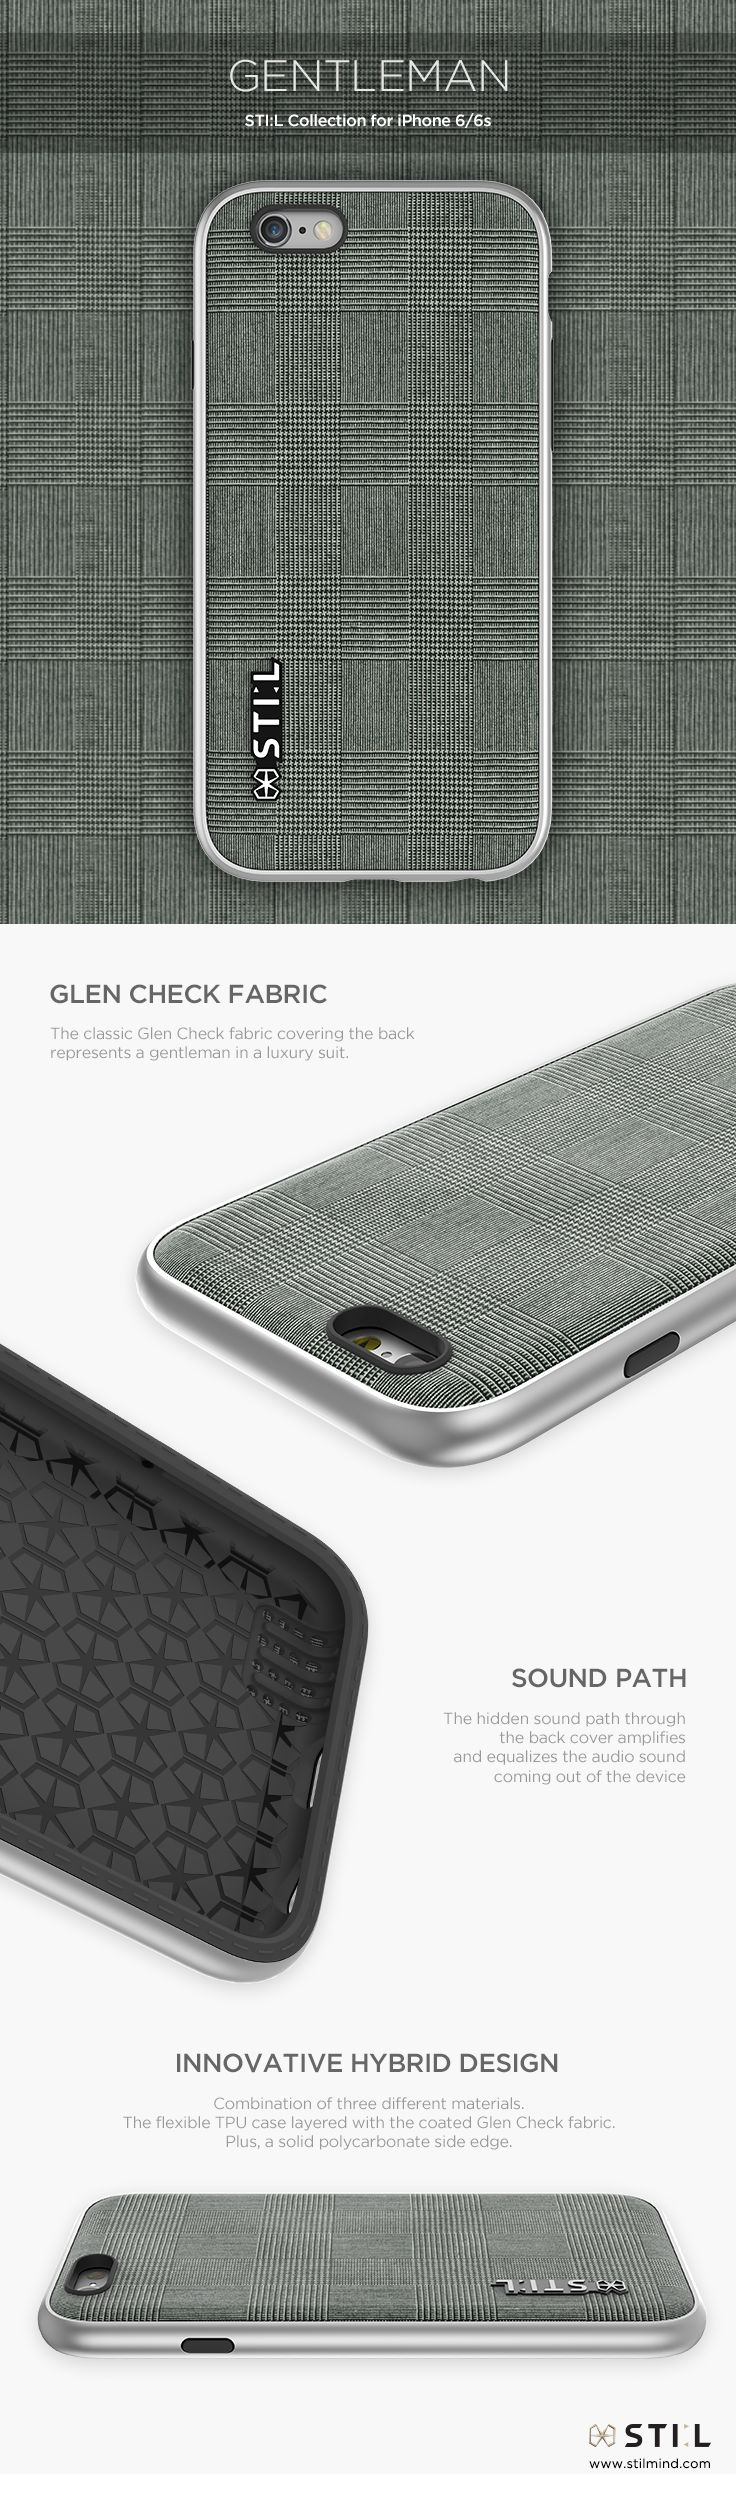 GENTLEMAN - A gentleman in classic luxury suit. Available in Color : Grey  #glencheck #stil #stilcase #mobile #fashion #design #case #iphone6 #iphone6s #2015fw